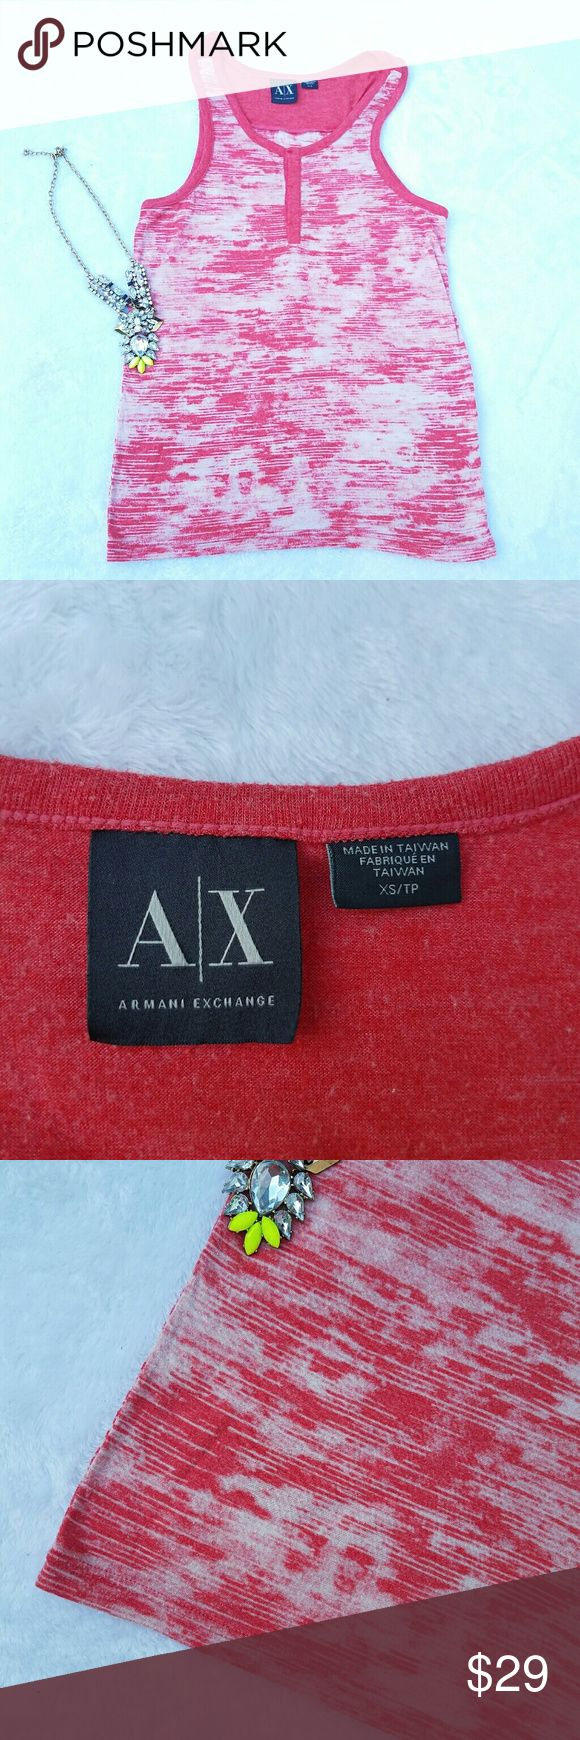 AX Armani Exchange Red White Size xs Tank Top AX Armani Exchange Red White Size xs Tank Top   . Size xs  . Brand AX  . Condition Great   . Fit smooth  . Style tank top  . Color red white  . Fabric? tag posted:)  . Machine wash low tumble dry  . Bundle & SAVE 25% off  No additional shipping charge when you purchase more from my closet. Armani Exchange Tops Tank Tops